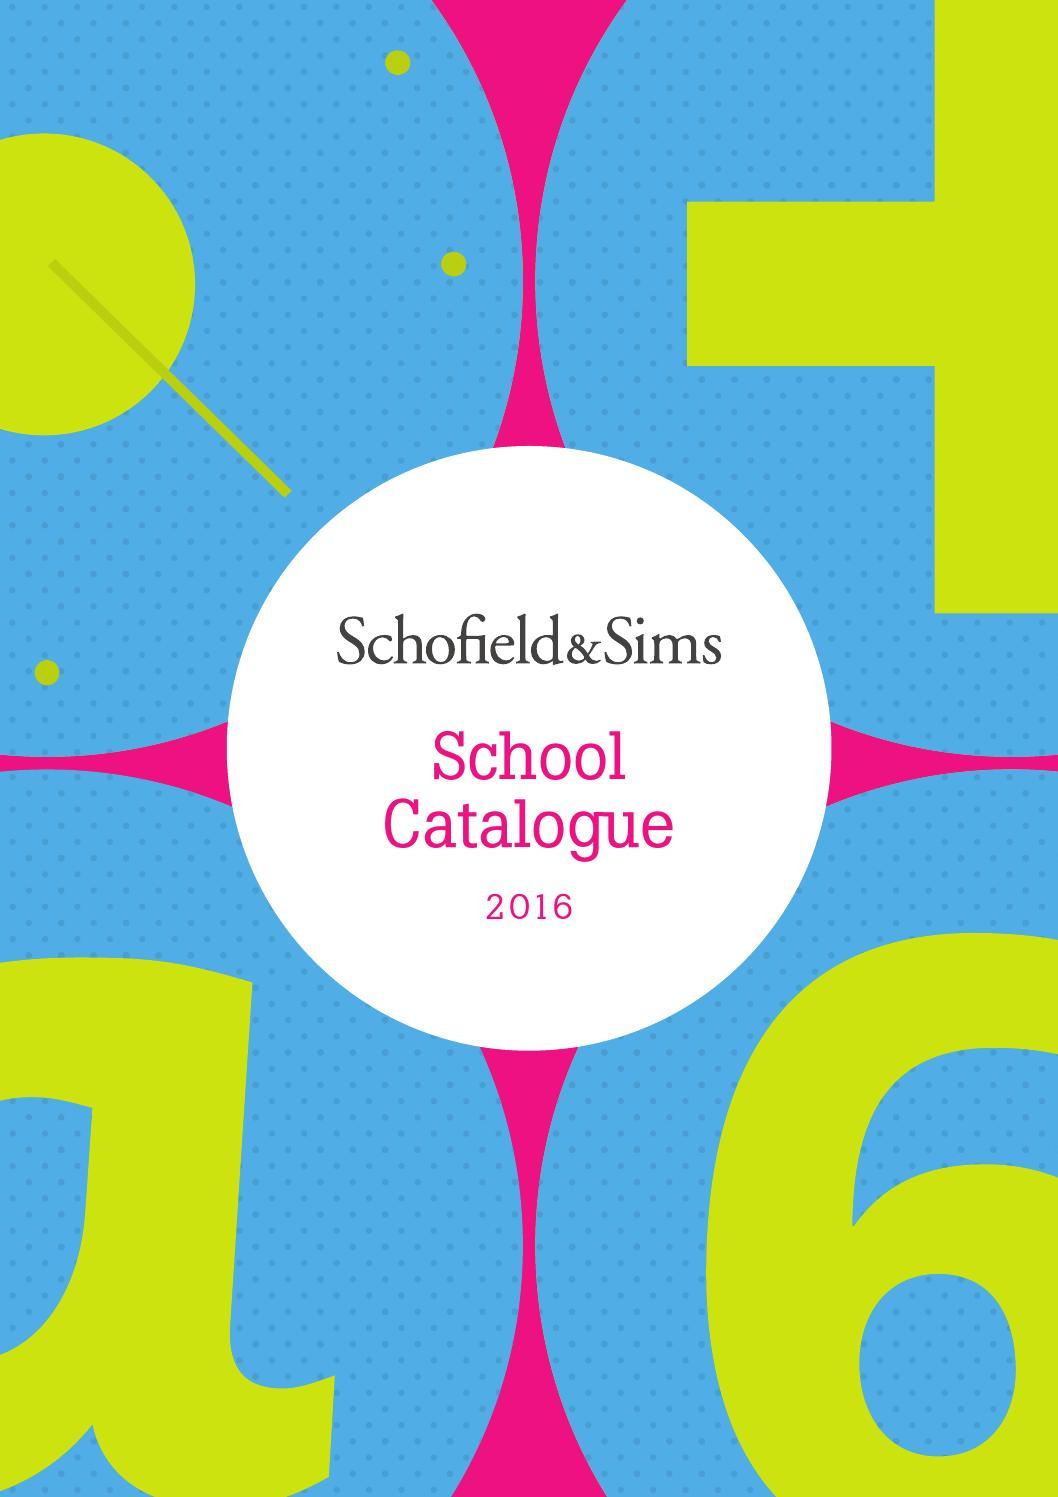 Schofield & Sims School Catalogue 2016 by Schofield & Sims - issuu